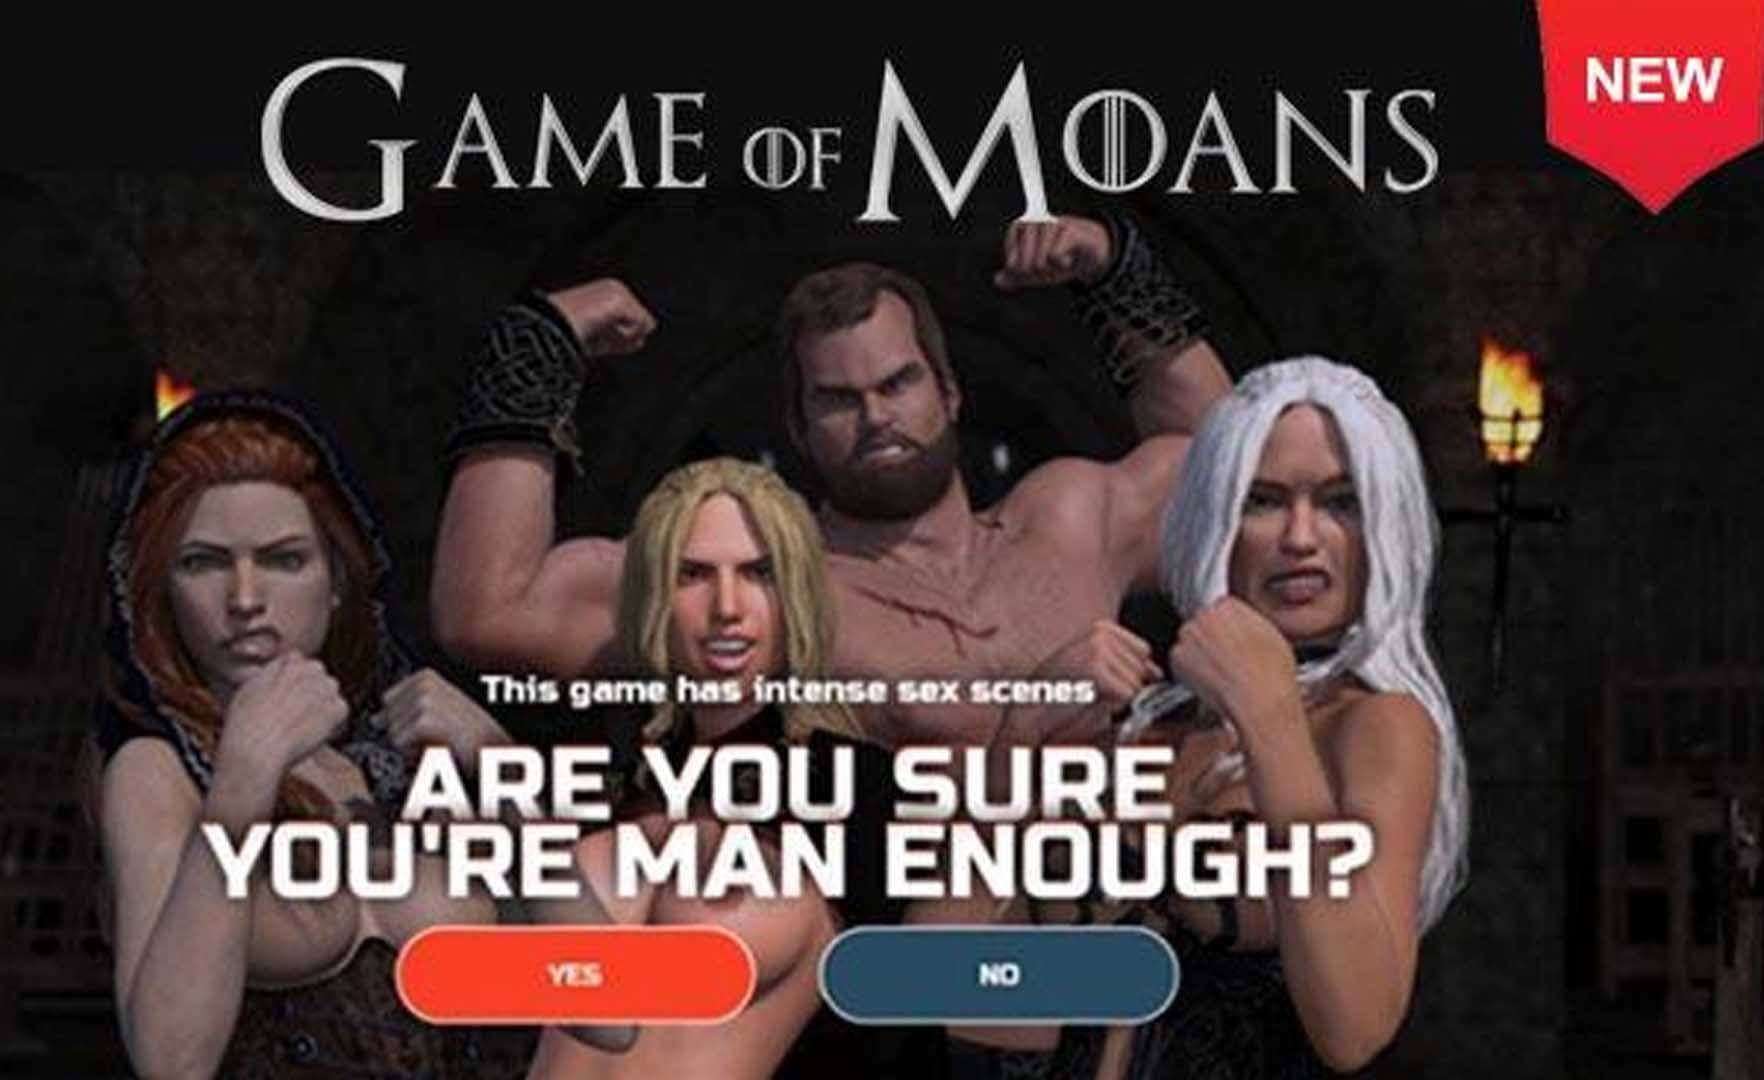 The game of moans sex game